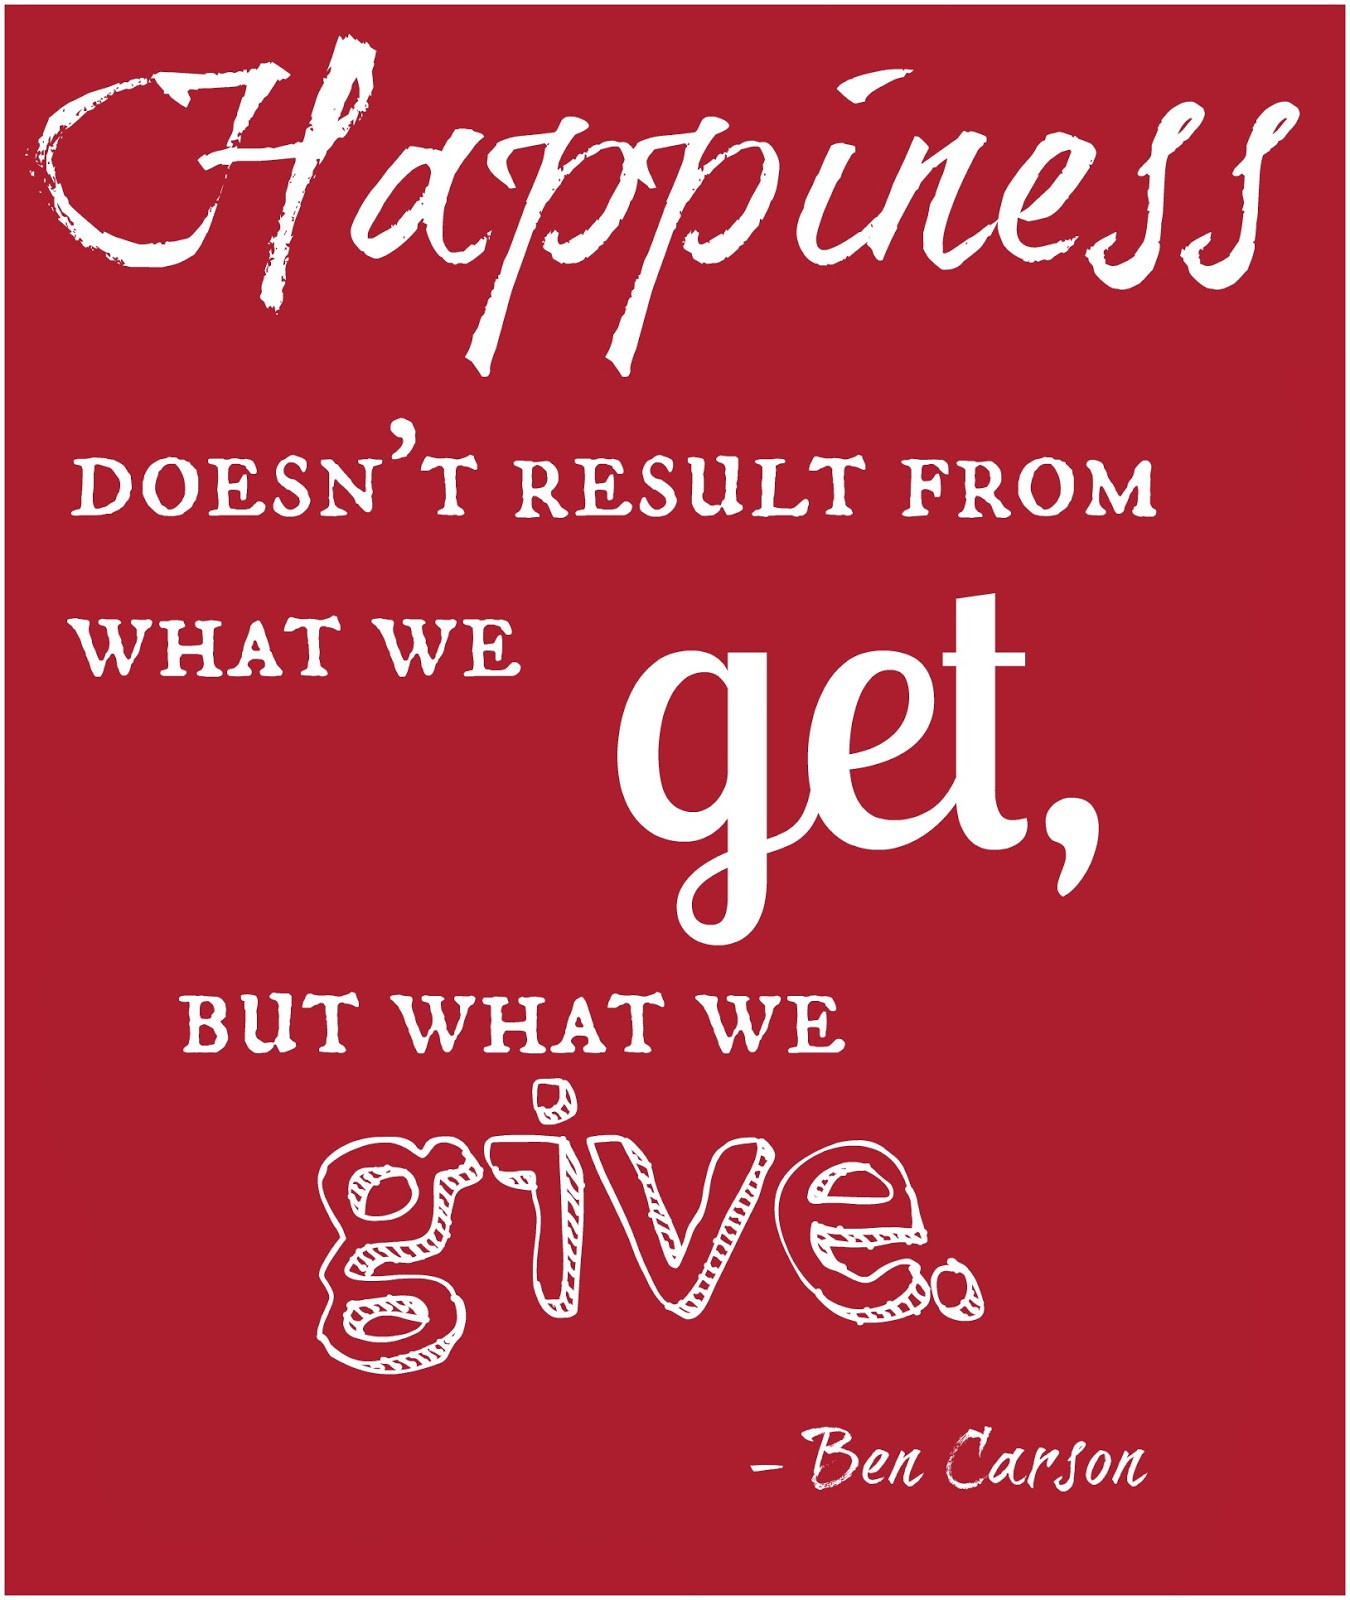 Inspirational Quote For Christmas  Holiday Season Quotes Inspirational QuotesGram